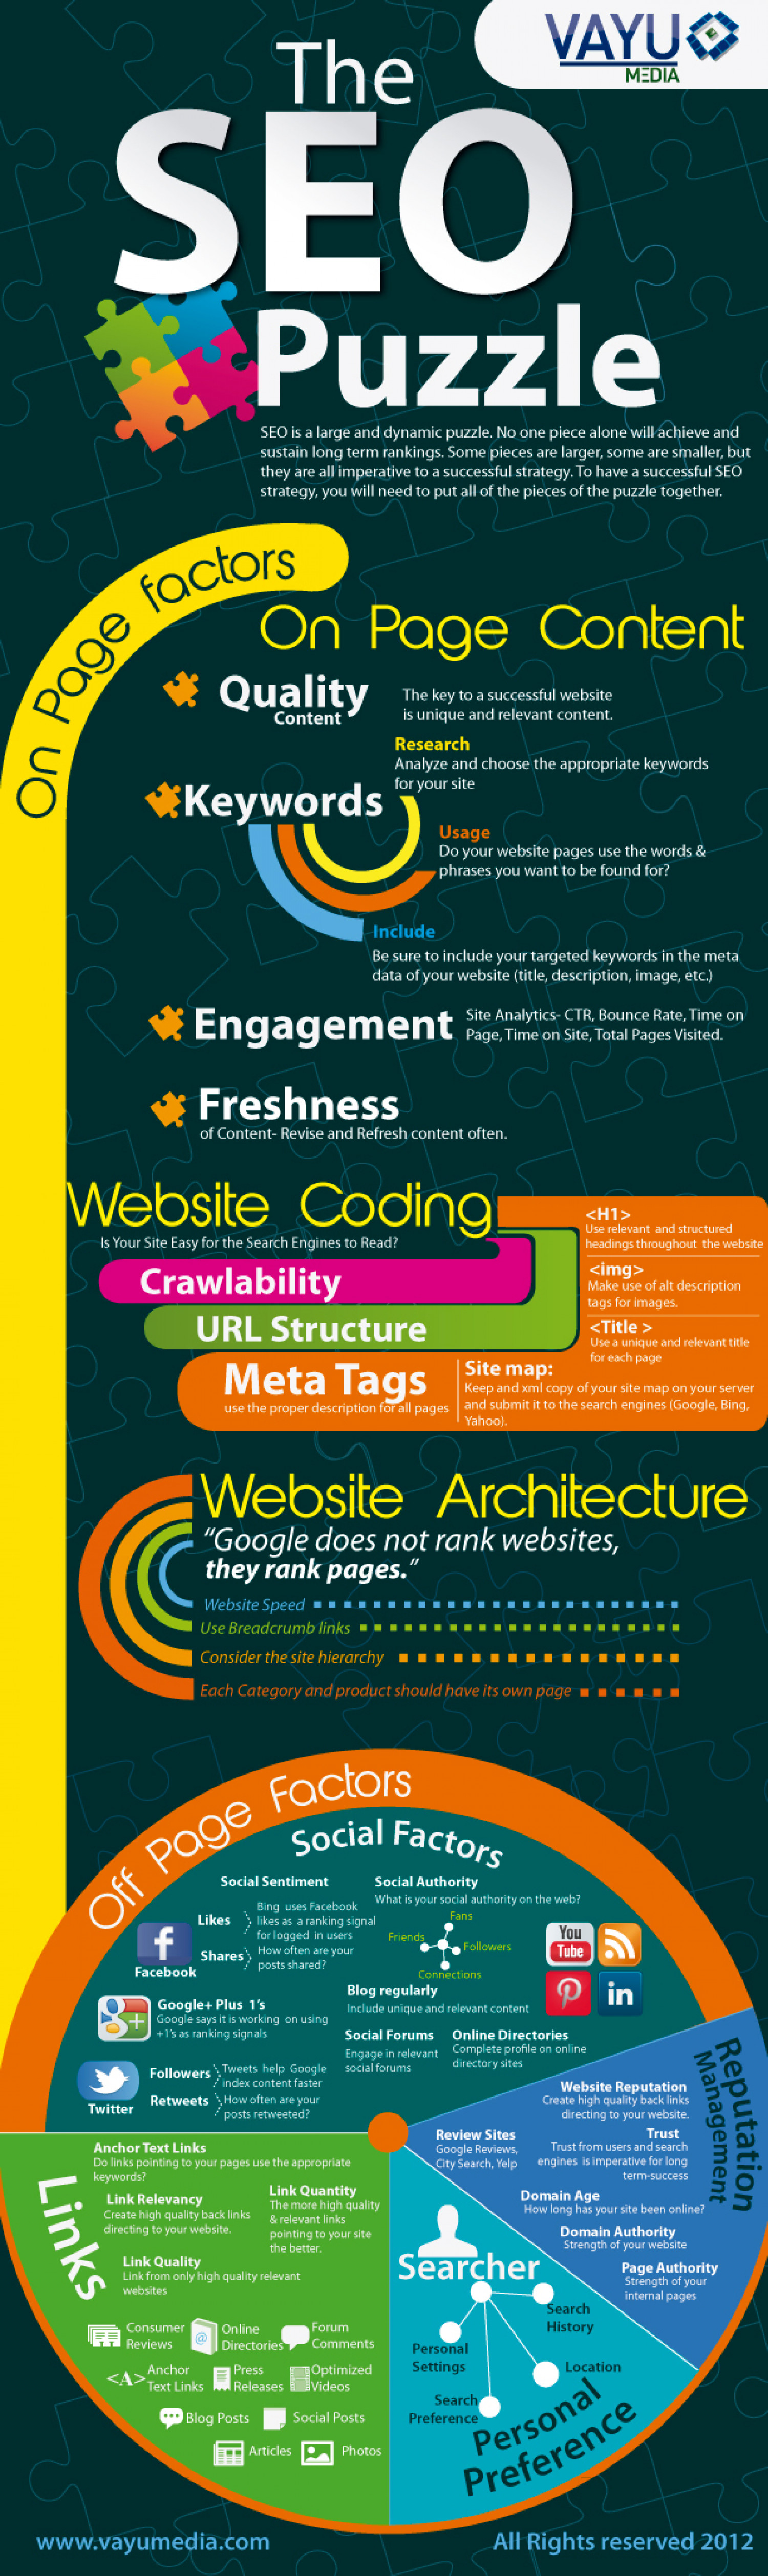 The SEO Puzzle Infographic